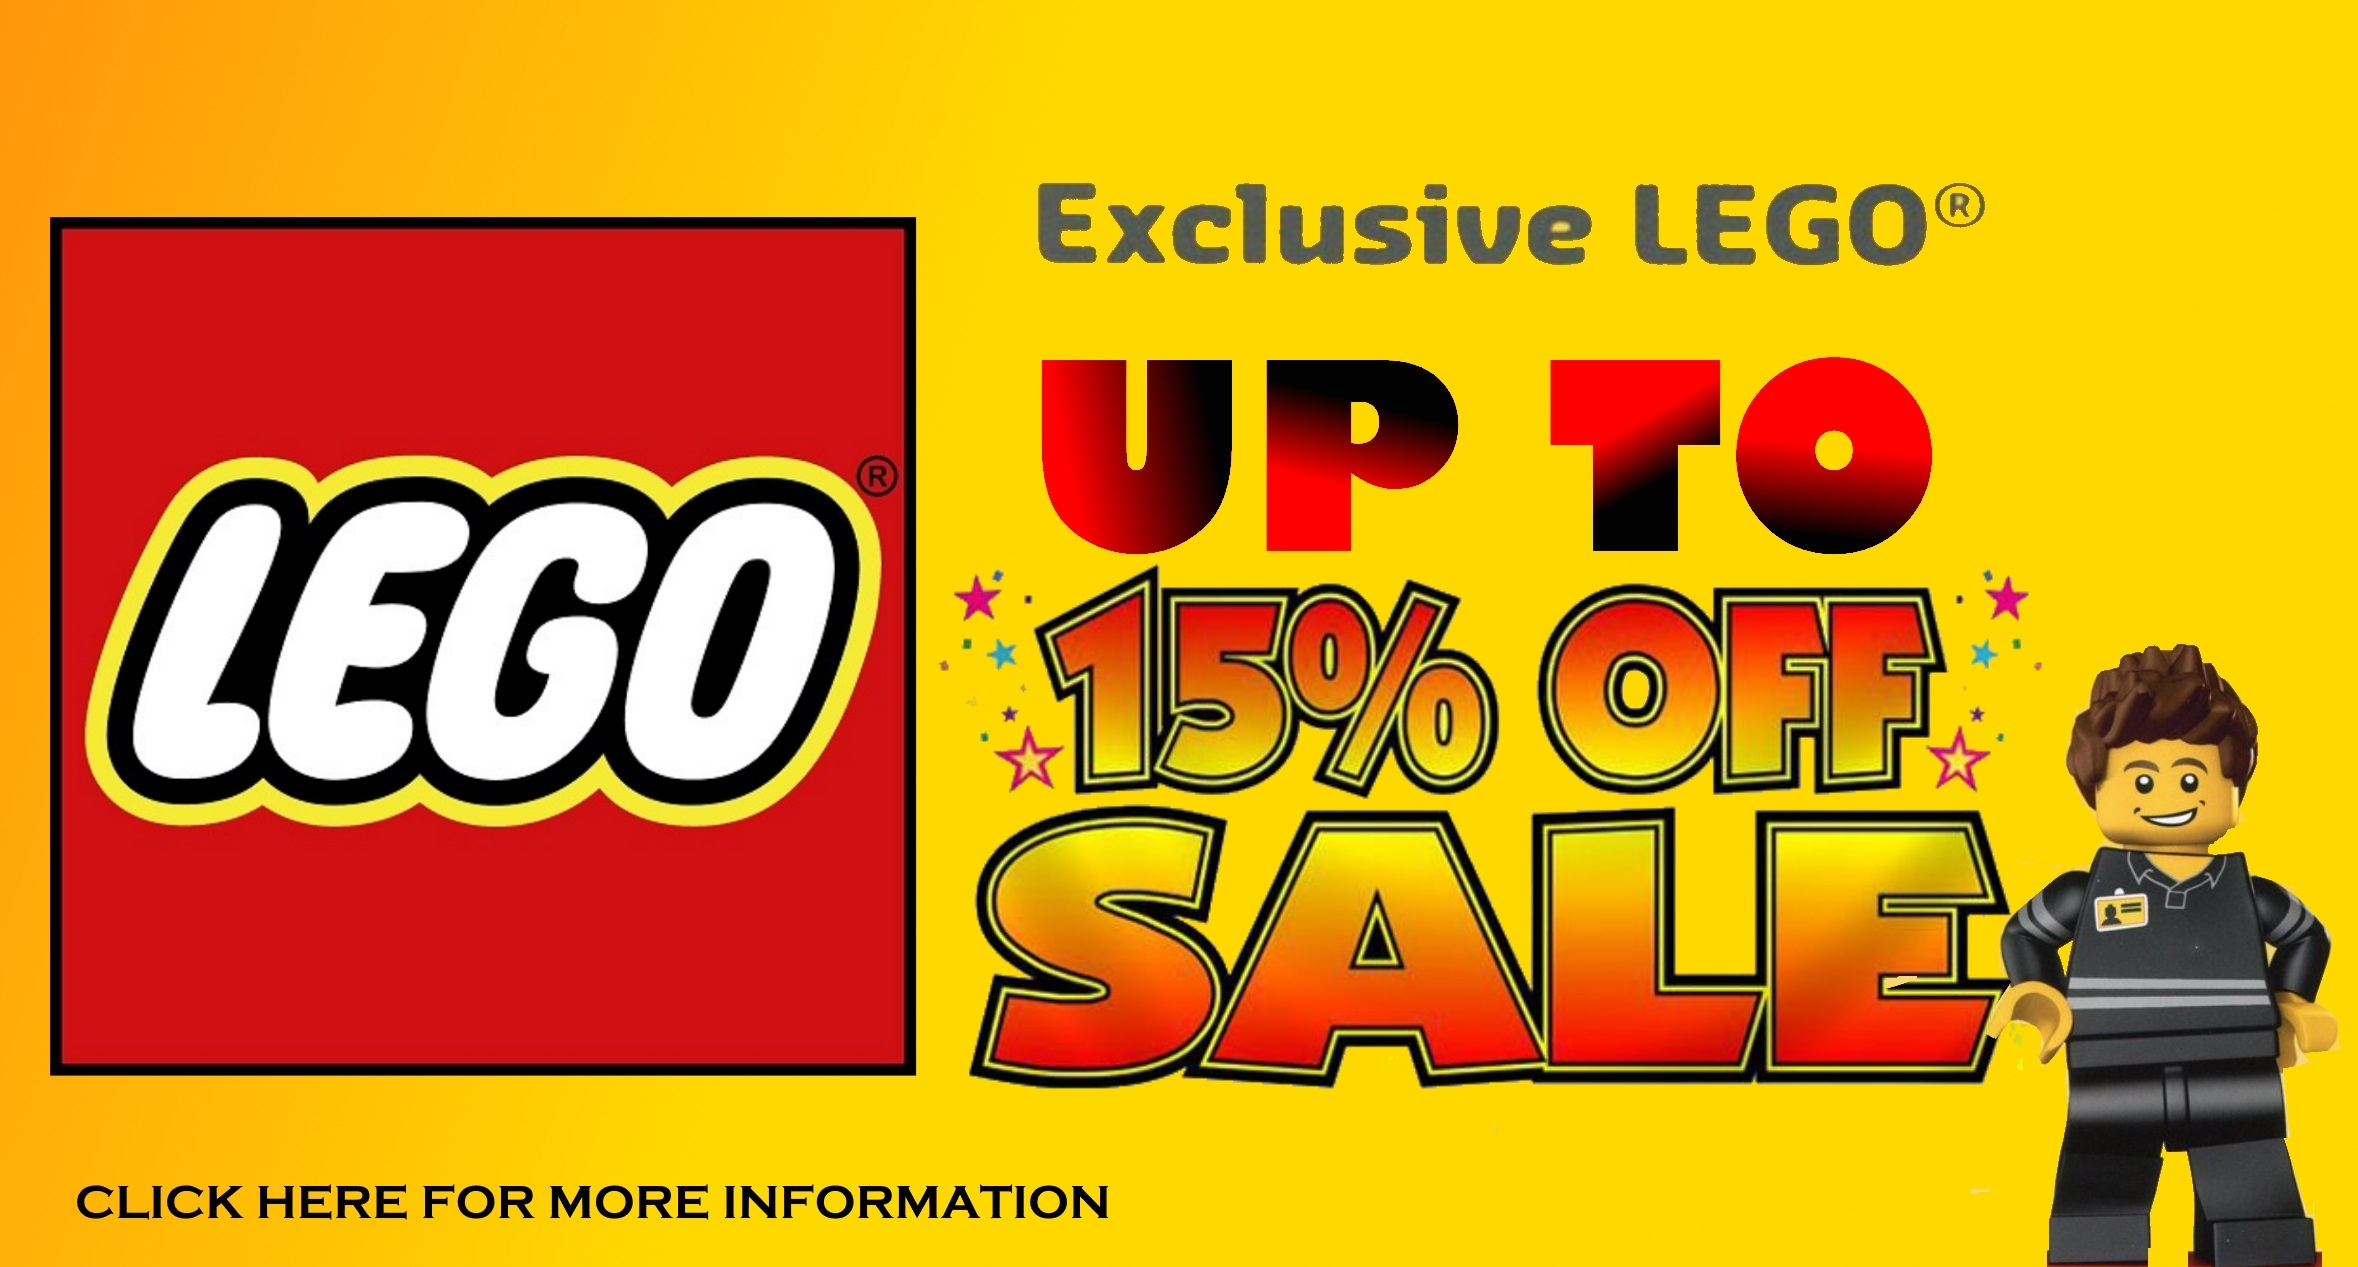 UP TO 15% OFF SALES FOR EXCLUSIVE LEGO